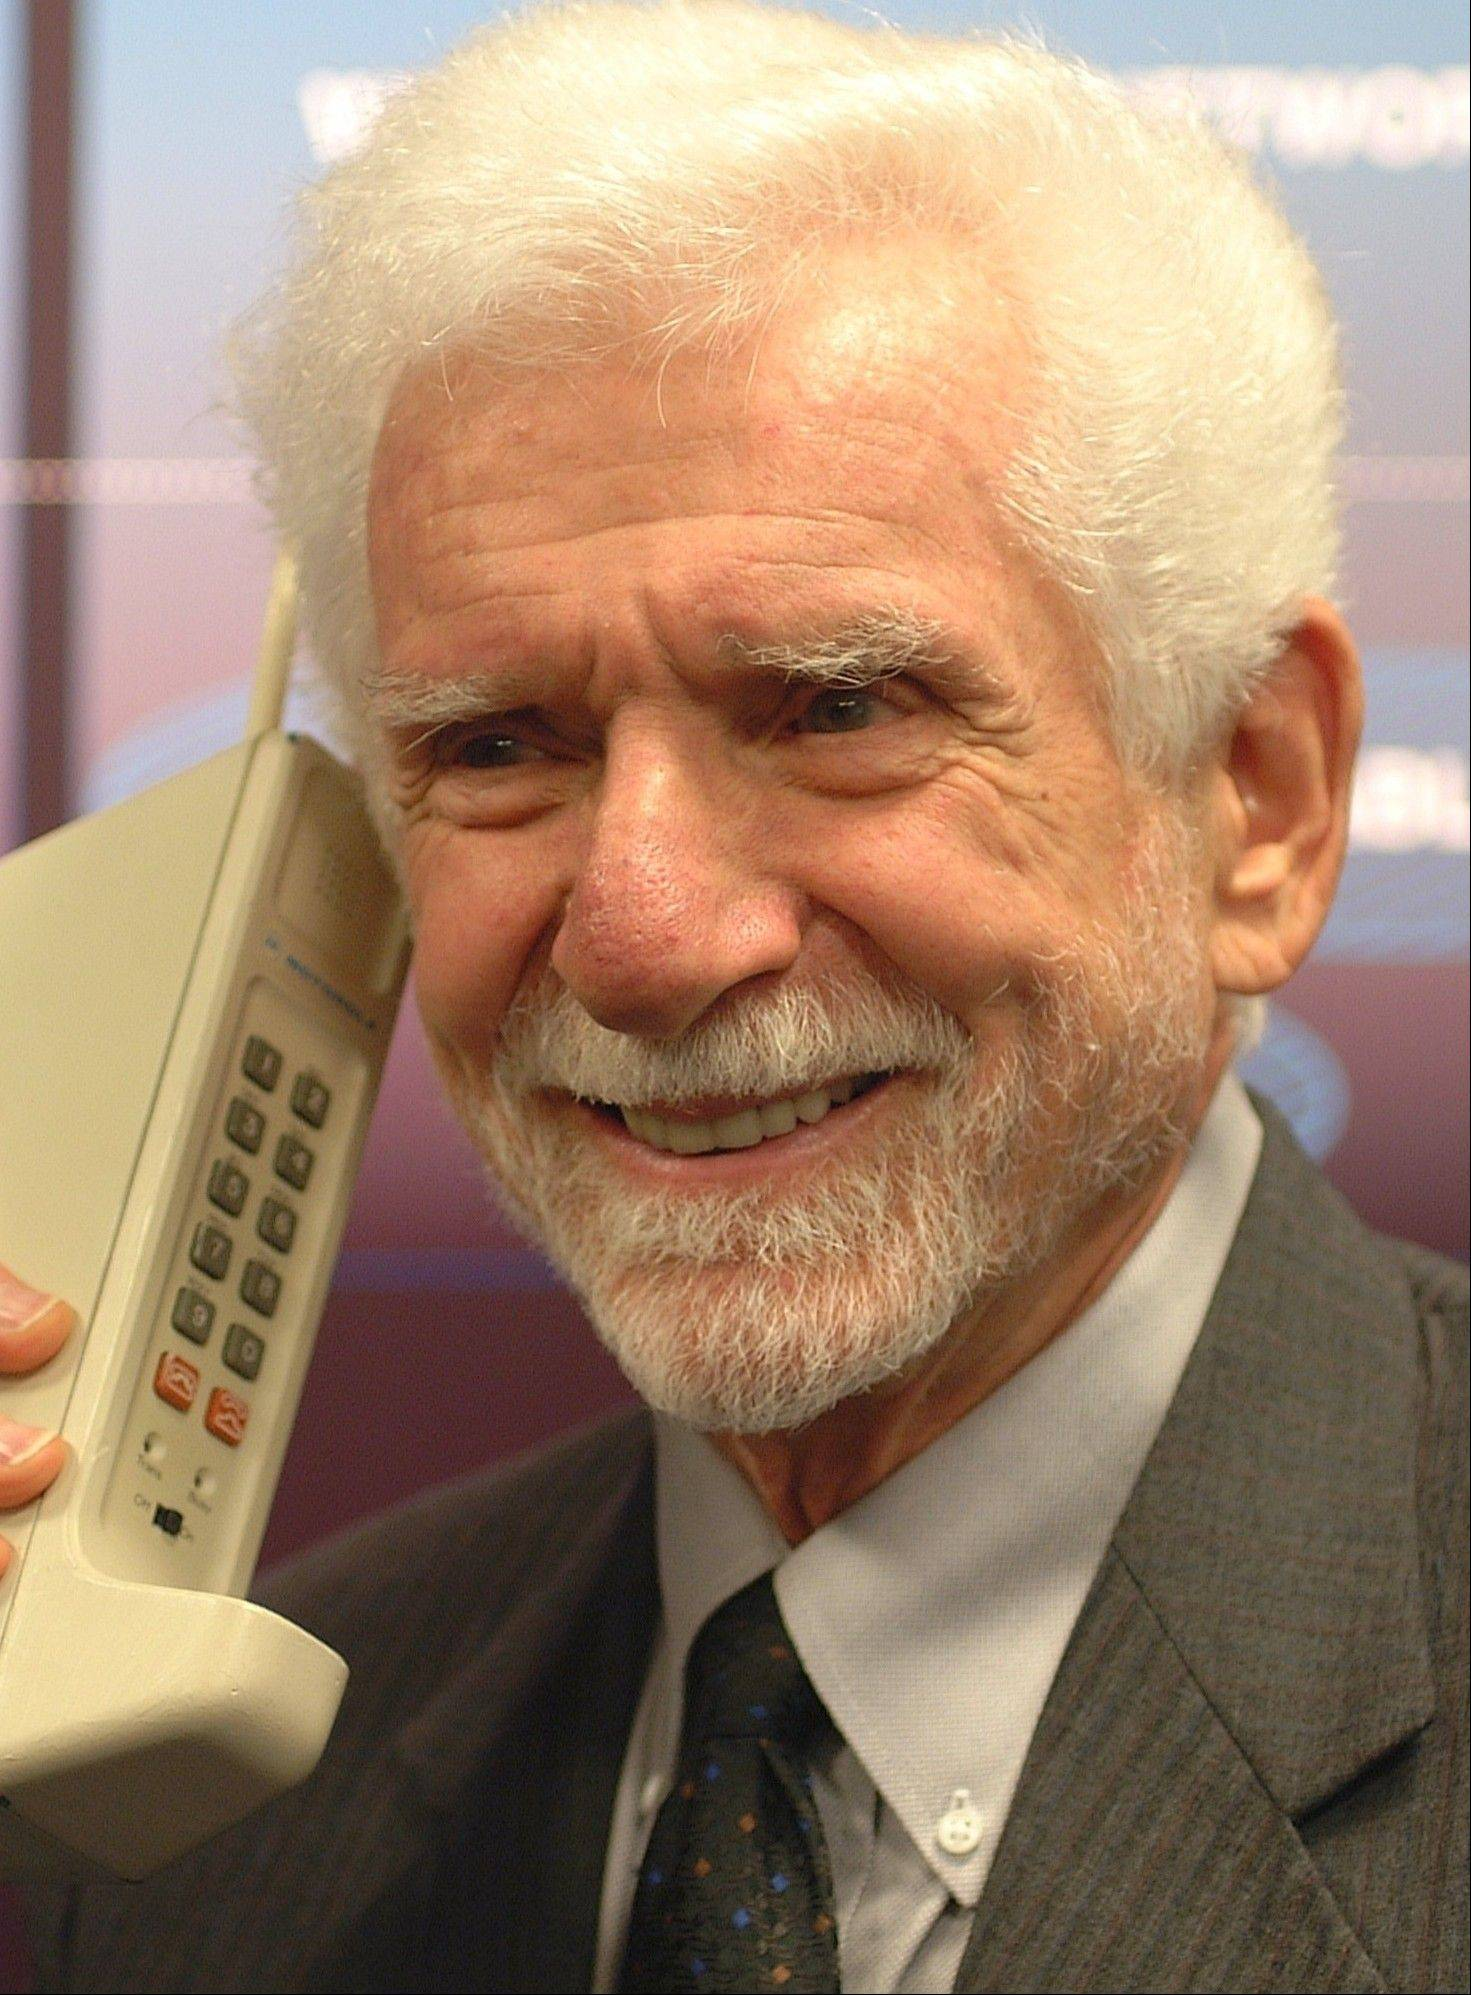 Marty Cooper led the Motorola team in 1973 to create the first cellphone, called the DynaTac.